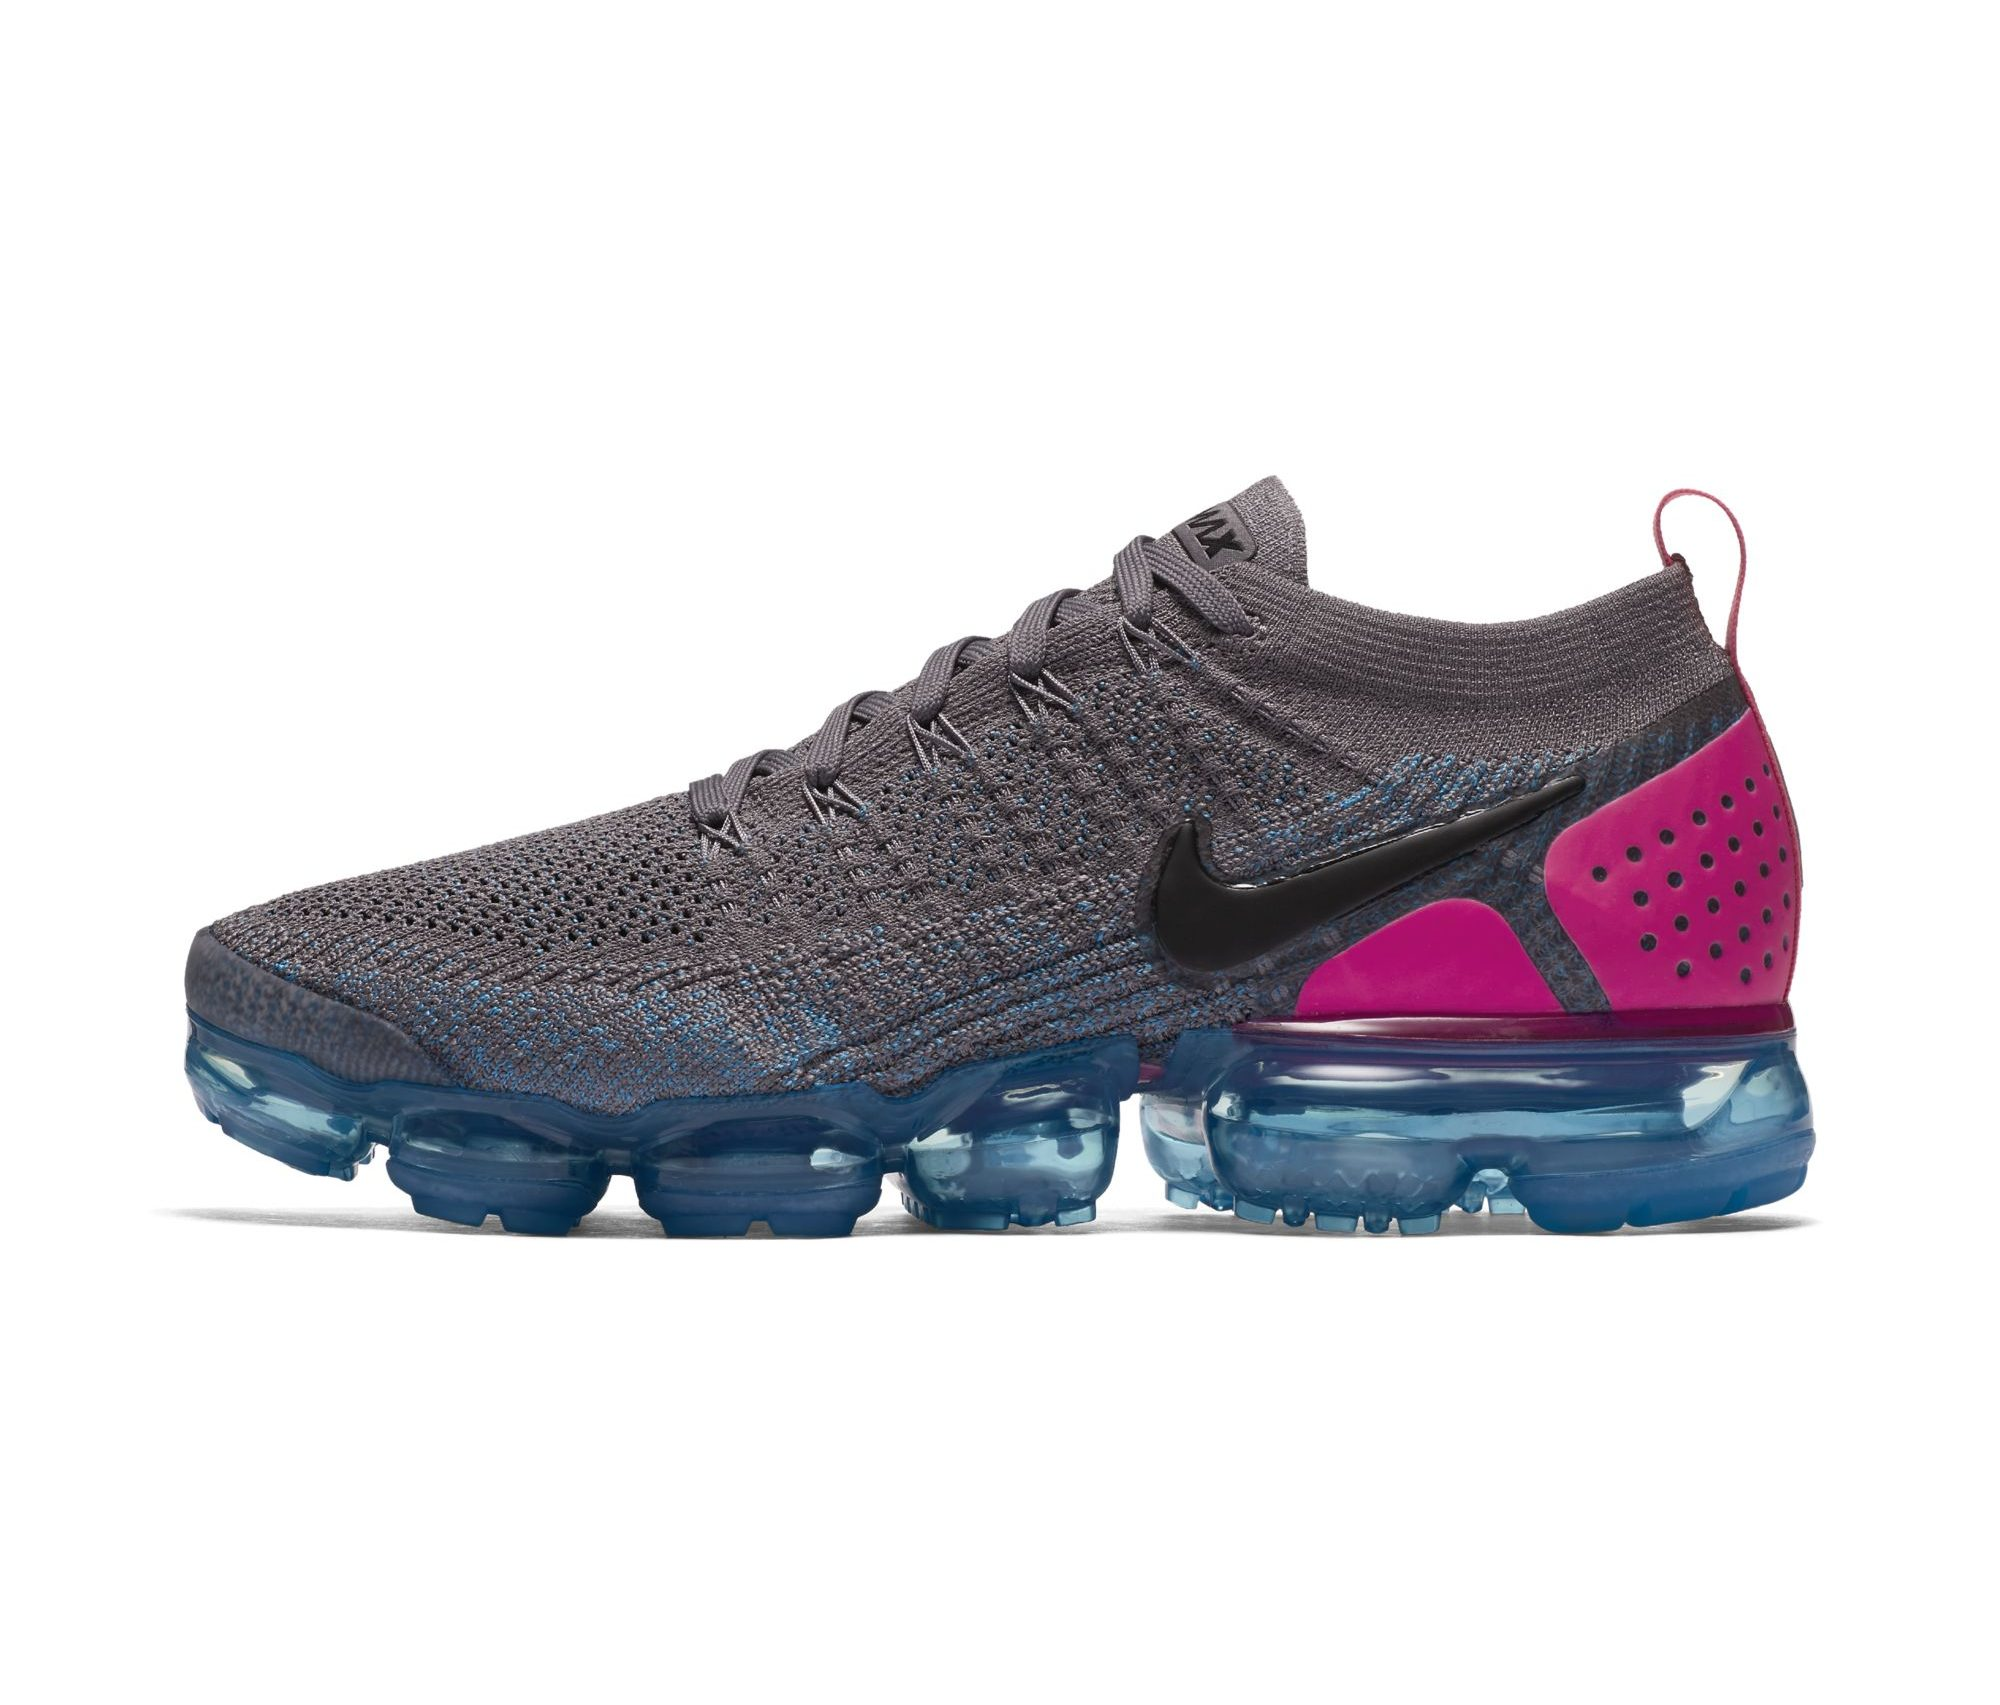 classic fit 58d53 27ca8 A New Nike Air VaporMax Flyknit 2 is Dropping Next Week ...